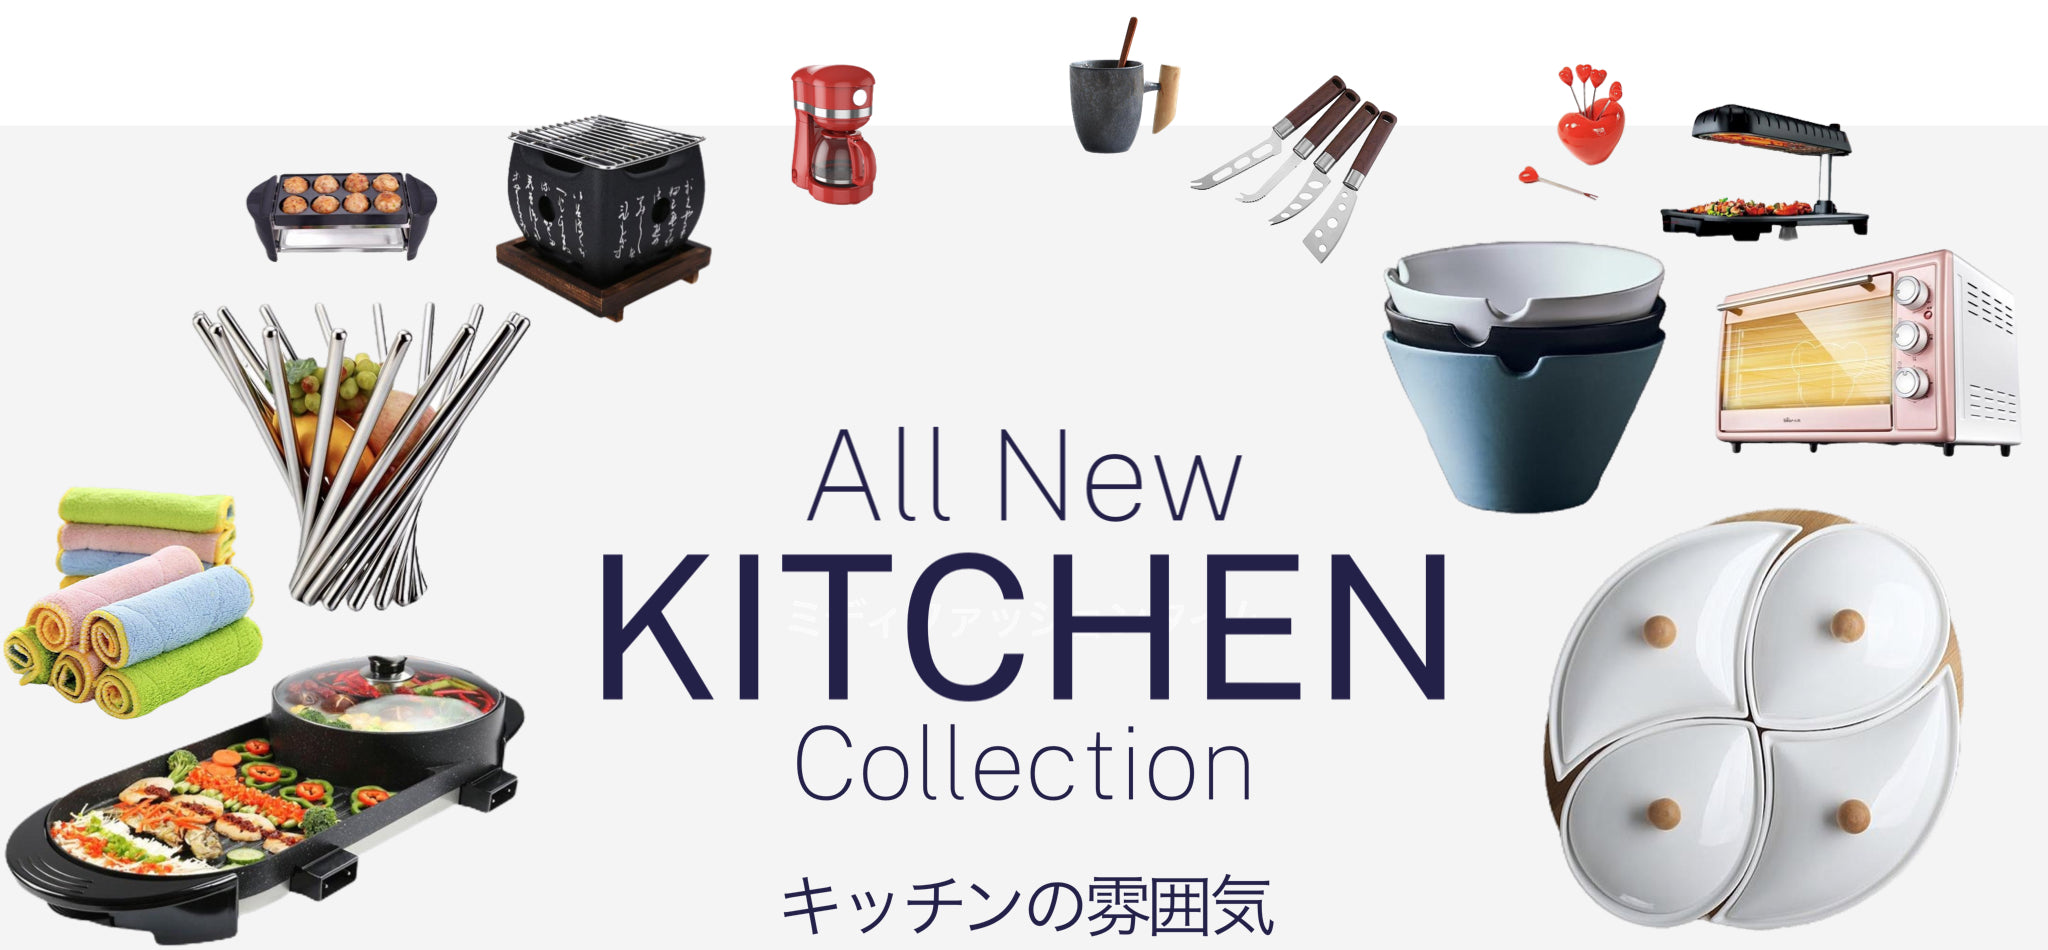 Home Kitchen Collection | miteigi